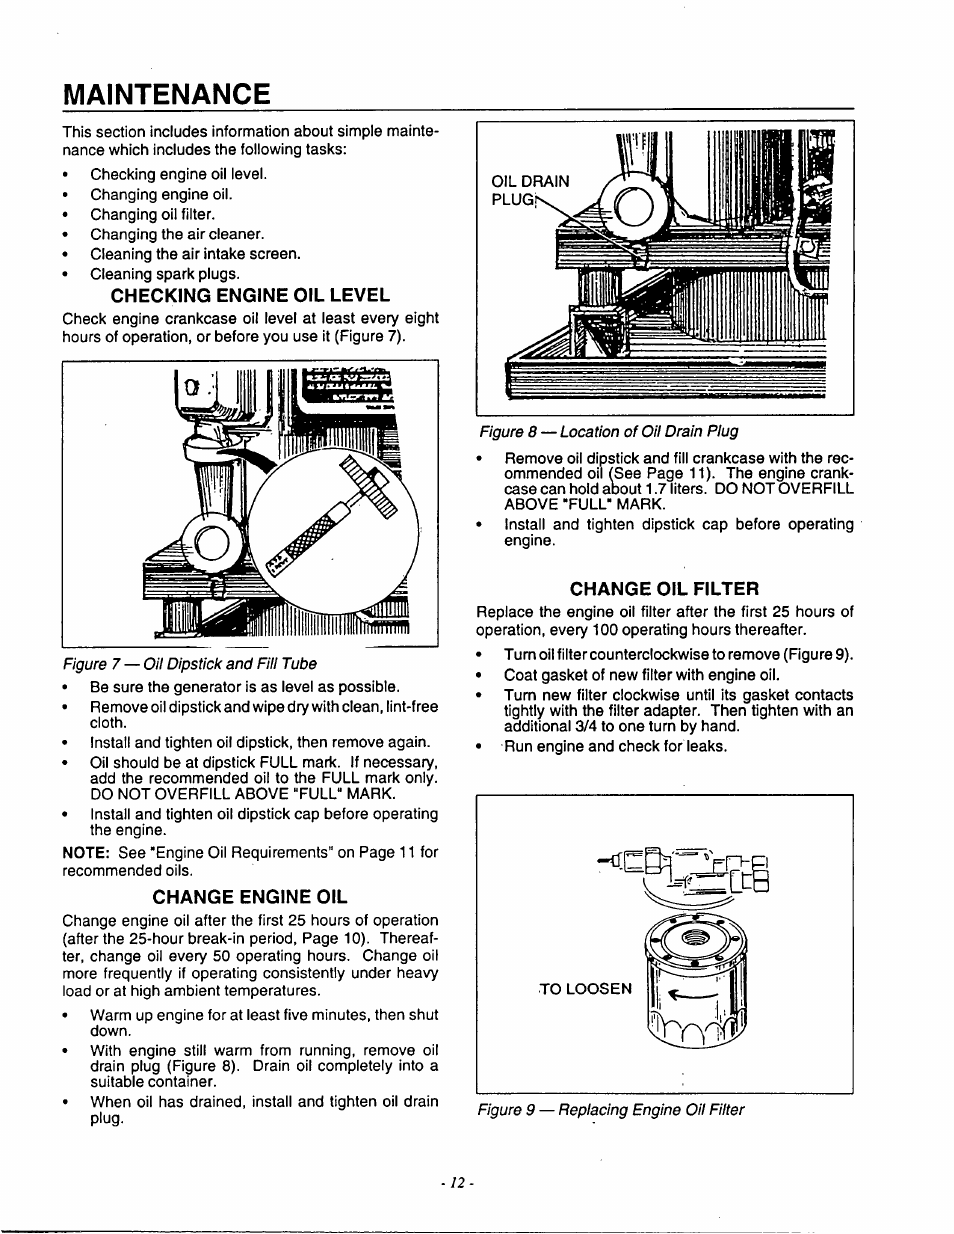 Maintenance, Checking engine oil level, Change engine oil | Generac Power  Systems 9592-3 User Manual | Page 14 / 36